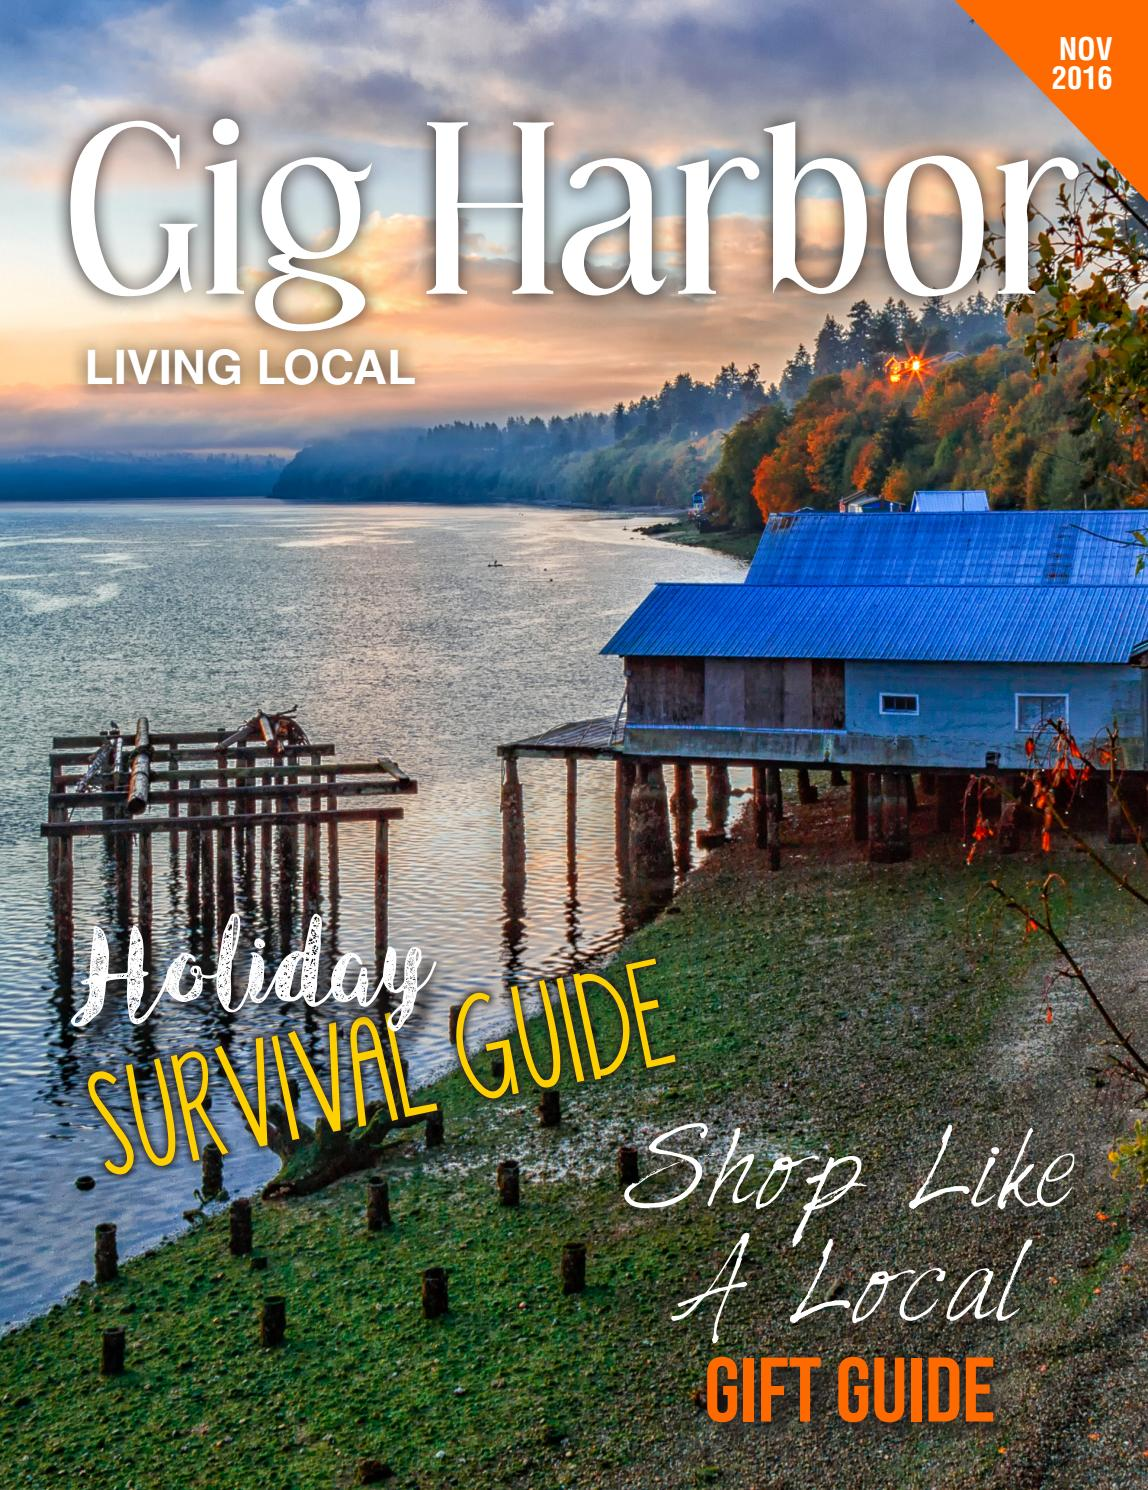 Gig harbor physical therapy - Gig Harbor Physical Therapy 18